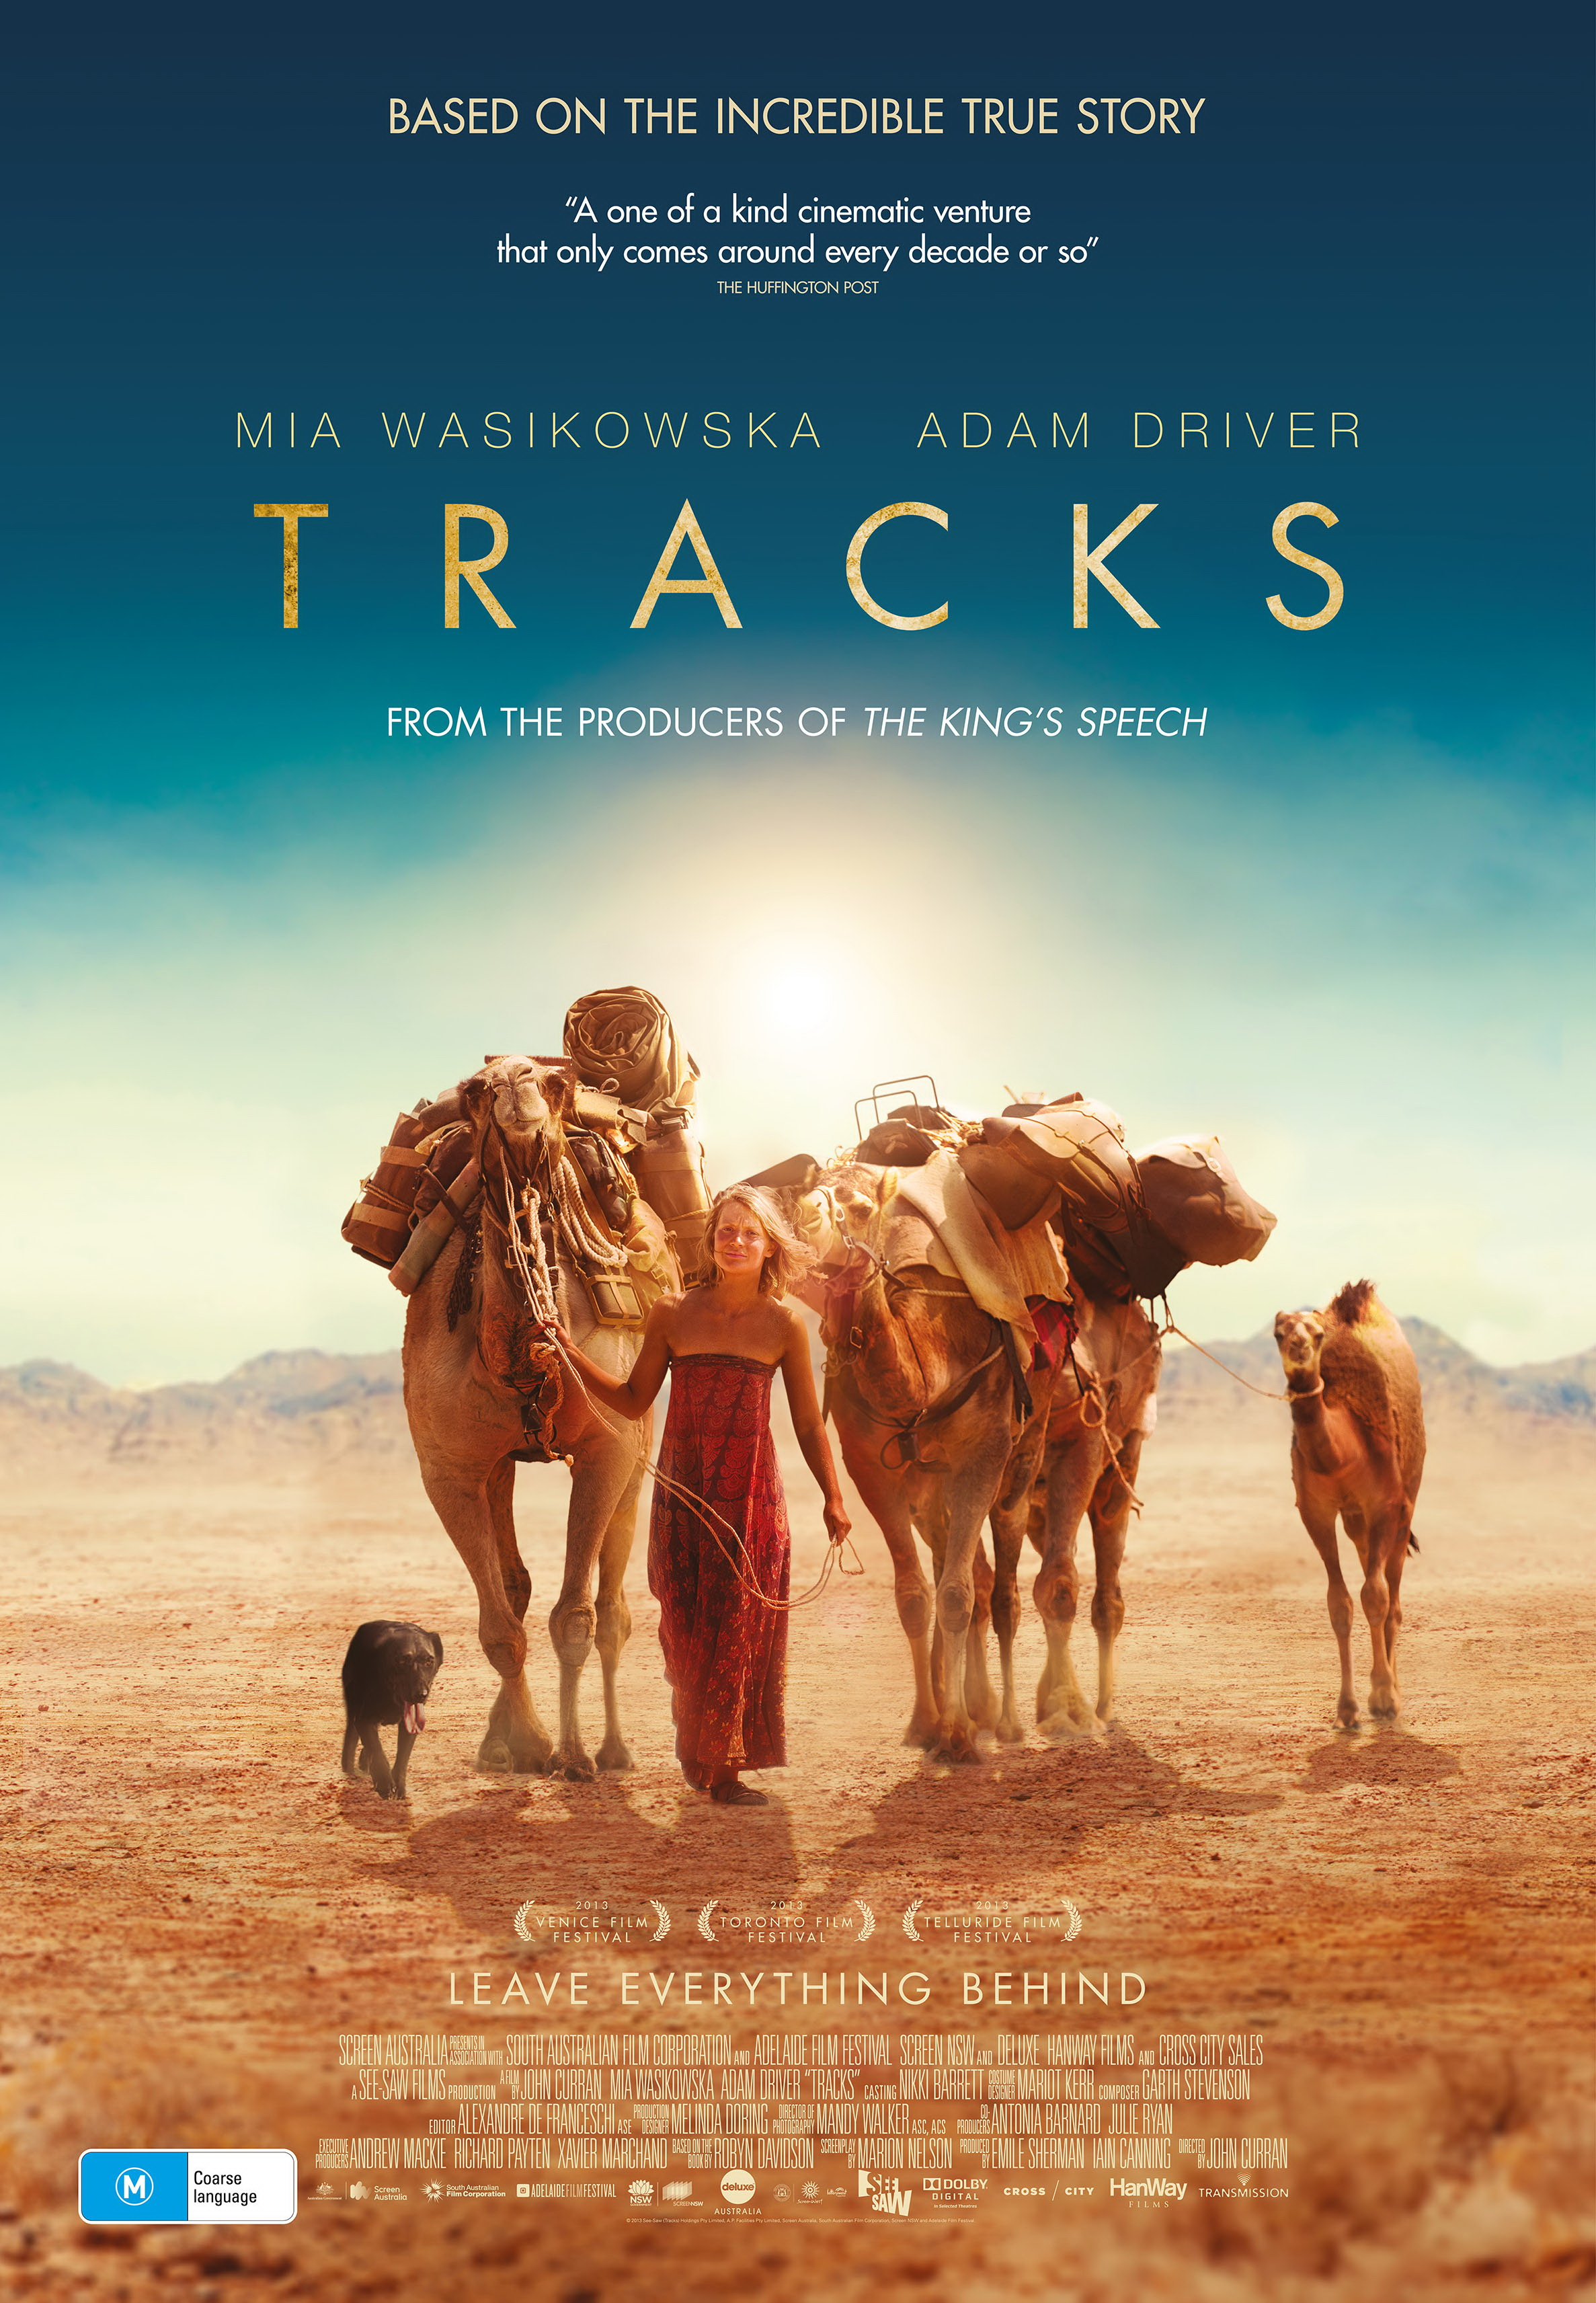 The Australian Poster for TRACKS. Courtesy See-Saw Films